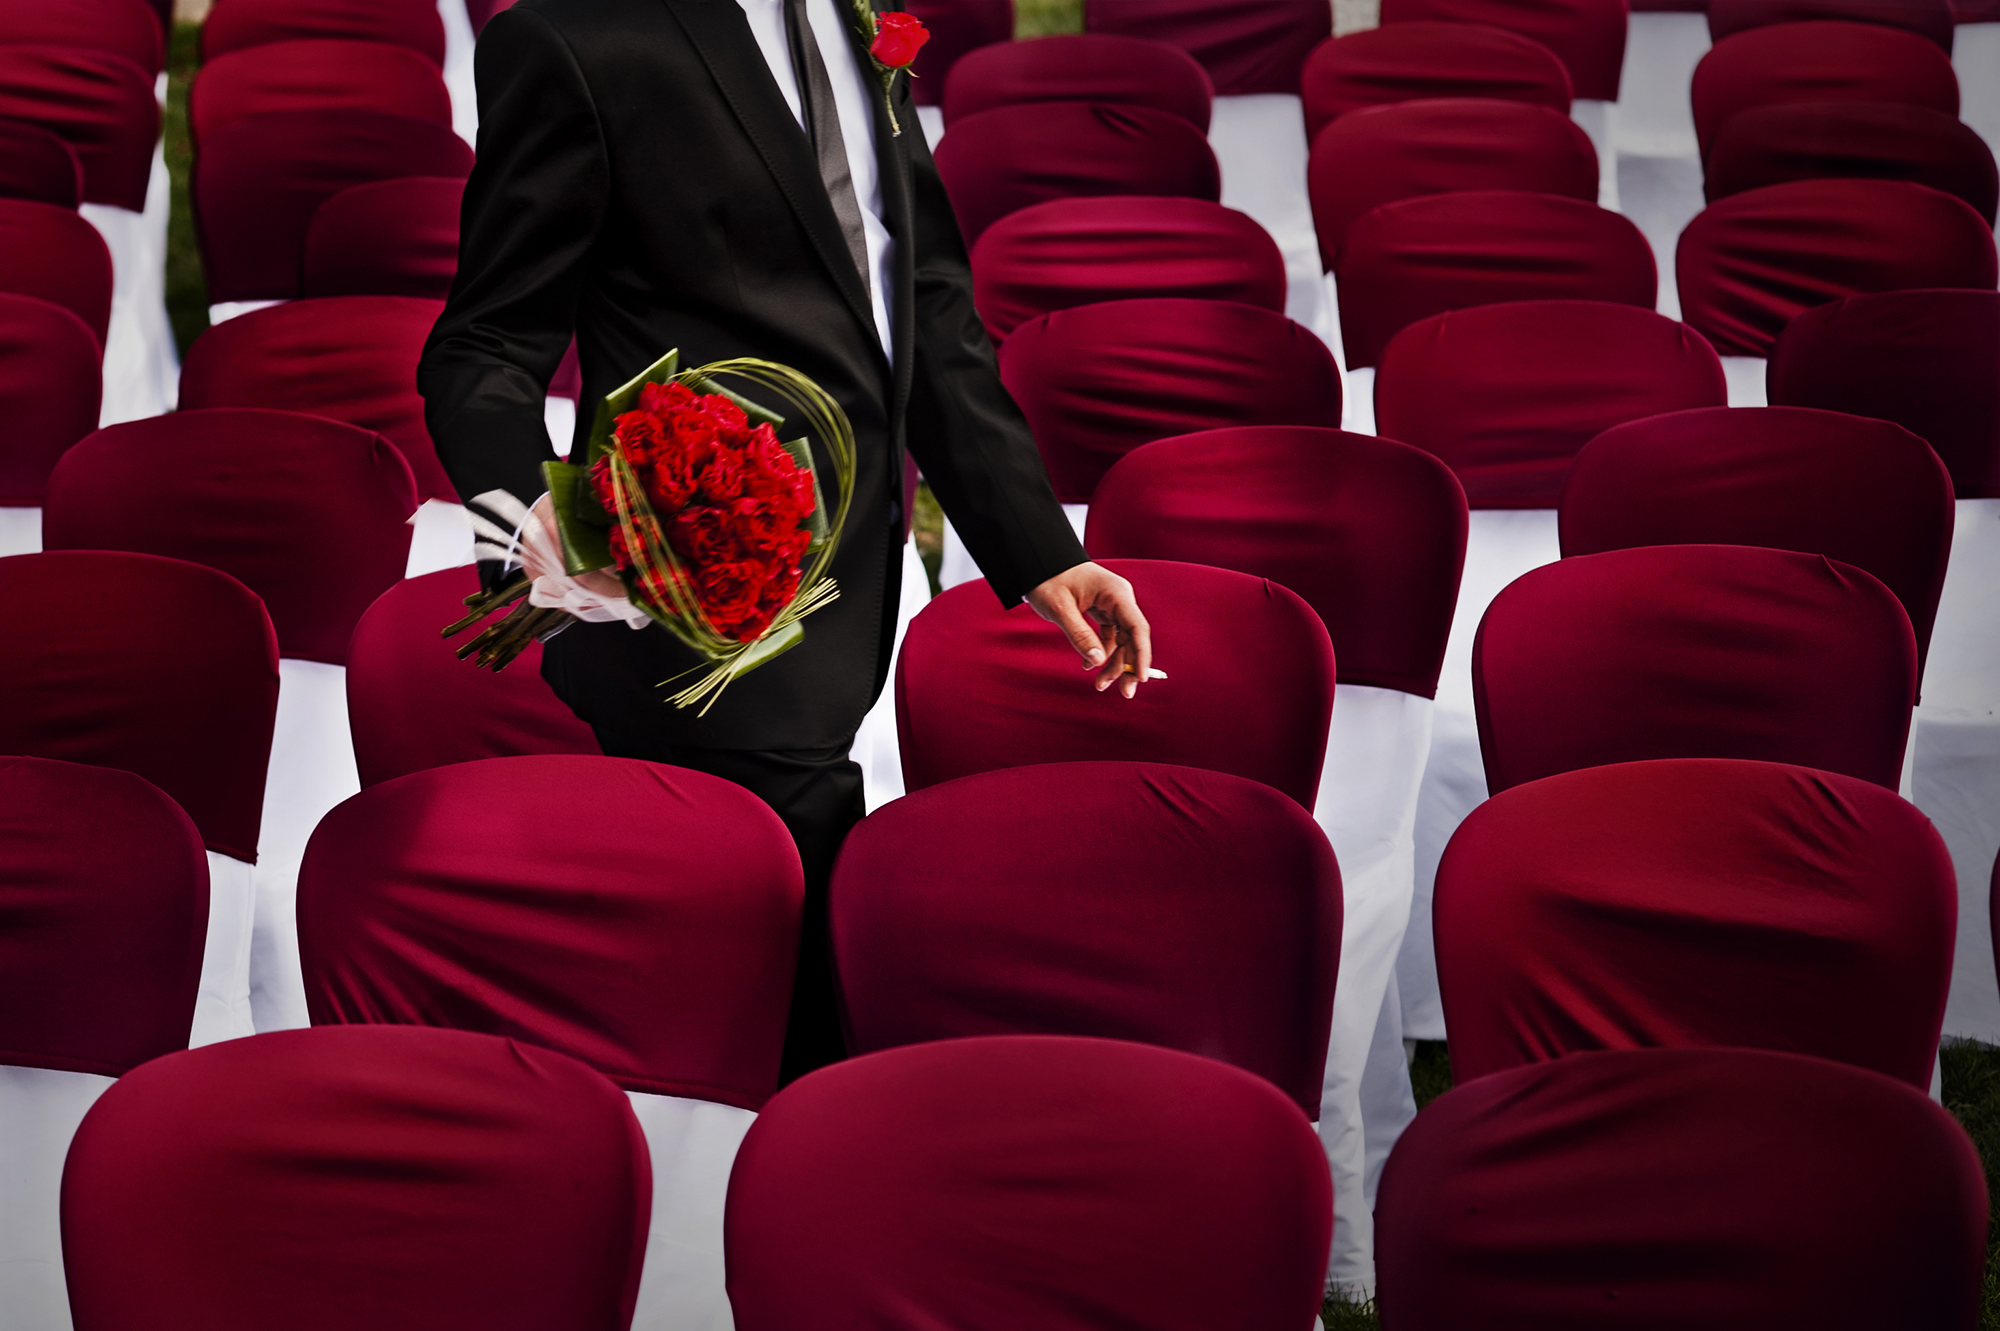 groom-holding-bouquet-of-red-roses-among-rows-of-chairs-worlds-best-wedding-photos-victor-lax-spain-wedding-photographers